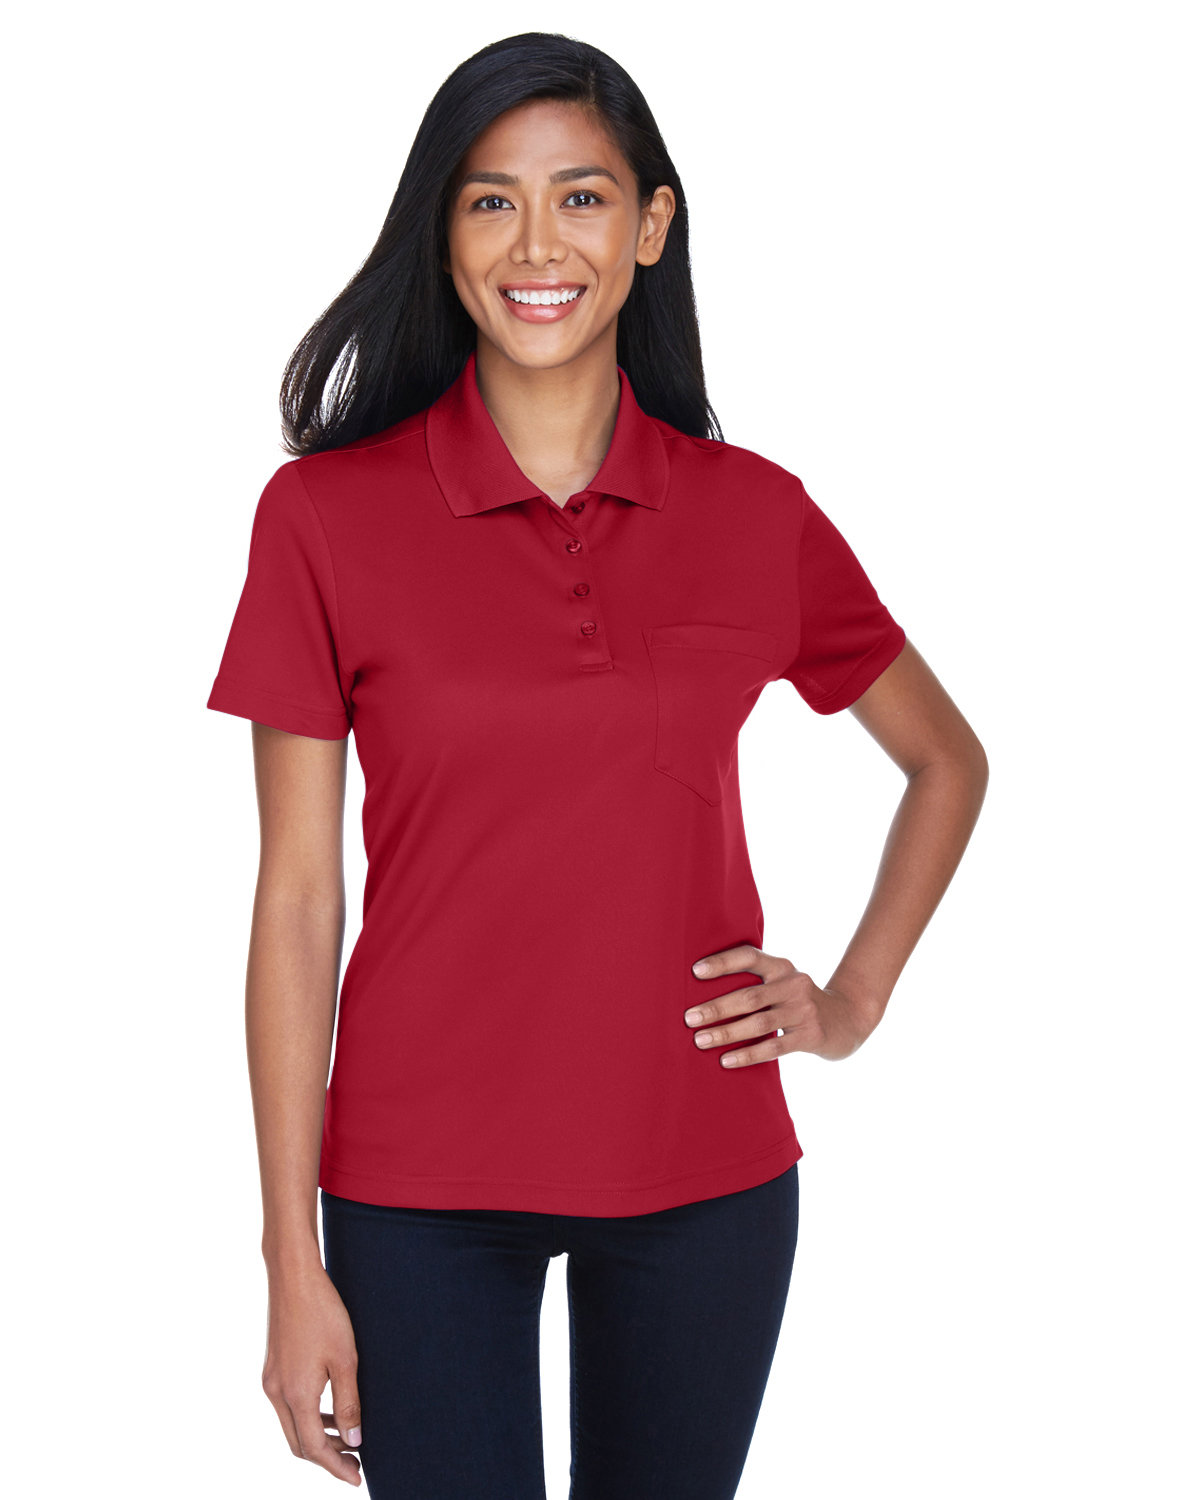 Core 365 Ladies' Origin Performance Piqué Polo with Pocket CLASSIC RED